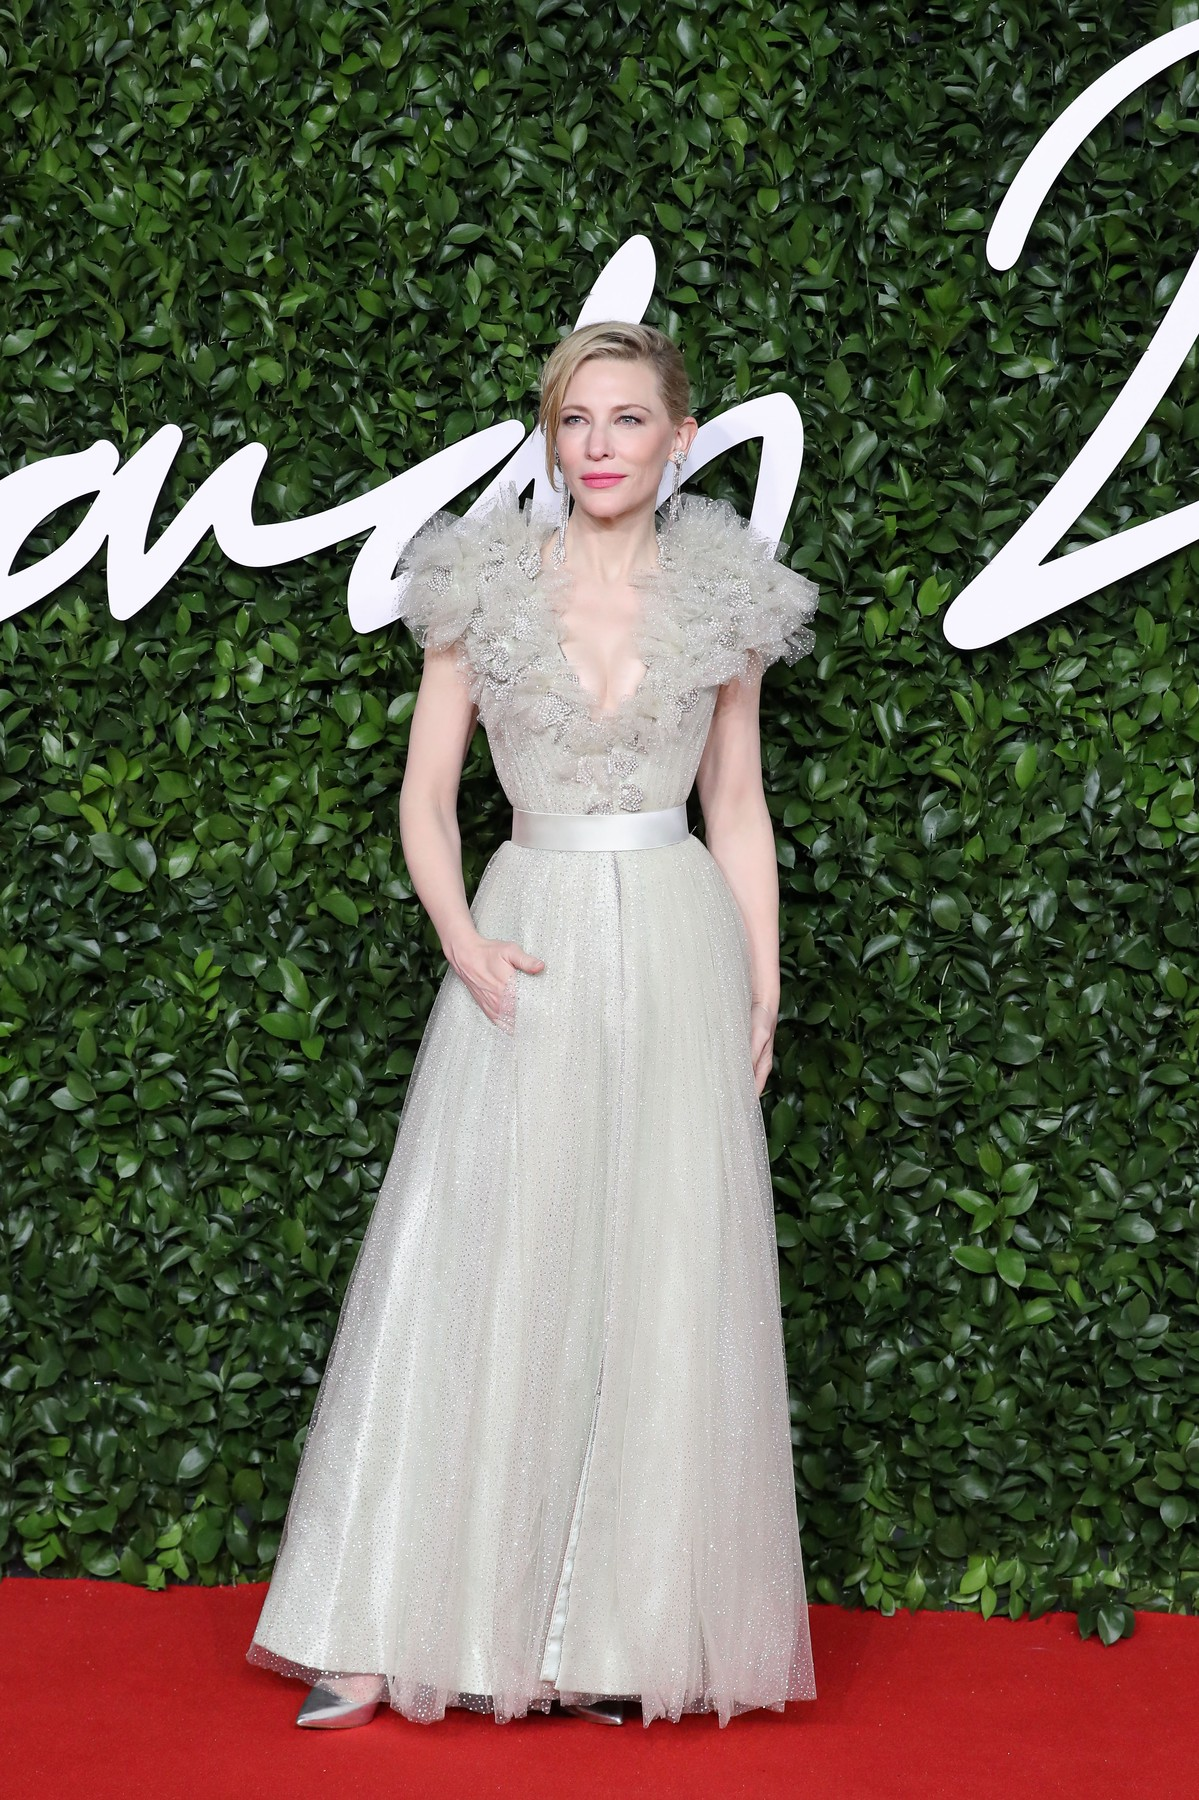 The Fashion awards 2019 take place at the Royal Albert Hall in London. Cate Blanchett attends the red carpet of the British Fashion Awards., Image: 486070363, License: Rights-managed, Restrictions: , Model Release: no, Credit line: Olivier Huitel / Crystal Pictures / Crystal pictures / Profimedia